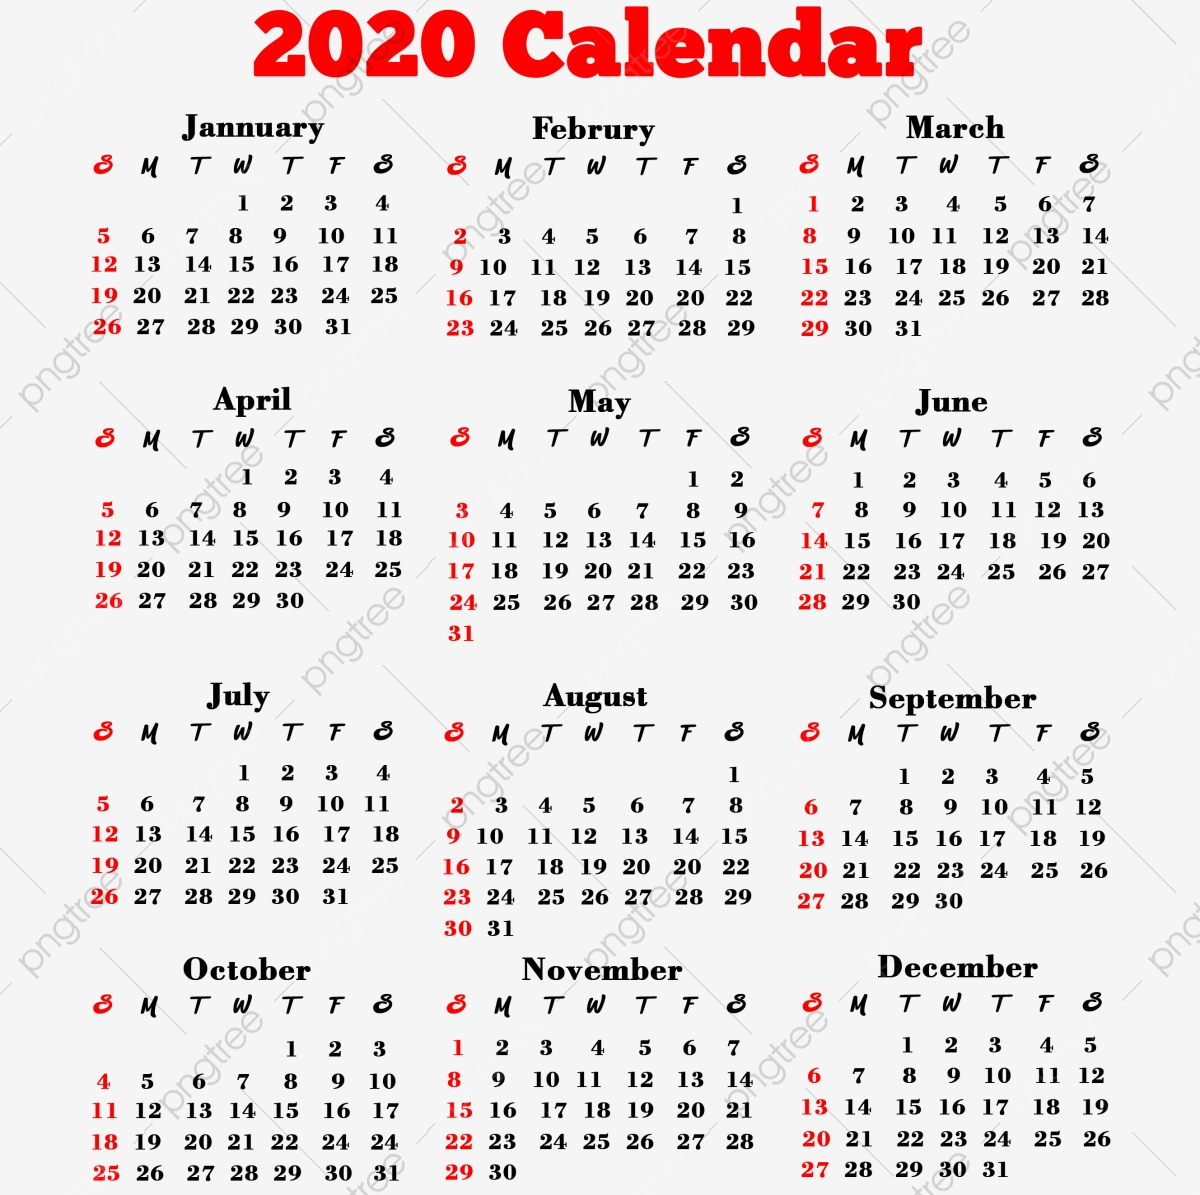 2020 Calendar Png, 2020 Calendar, 2020, Calendar Png pertaining to 2020 Calendar Psd File